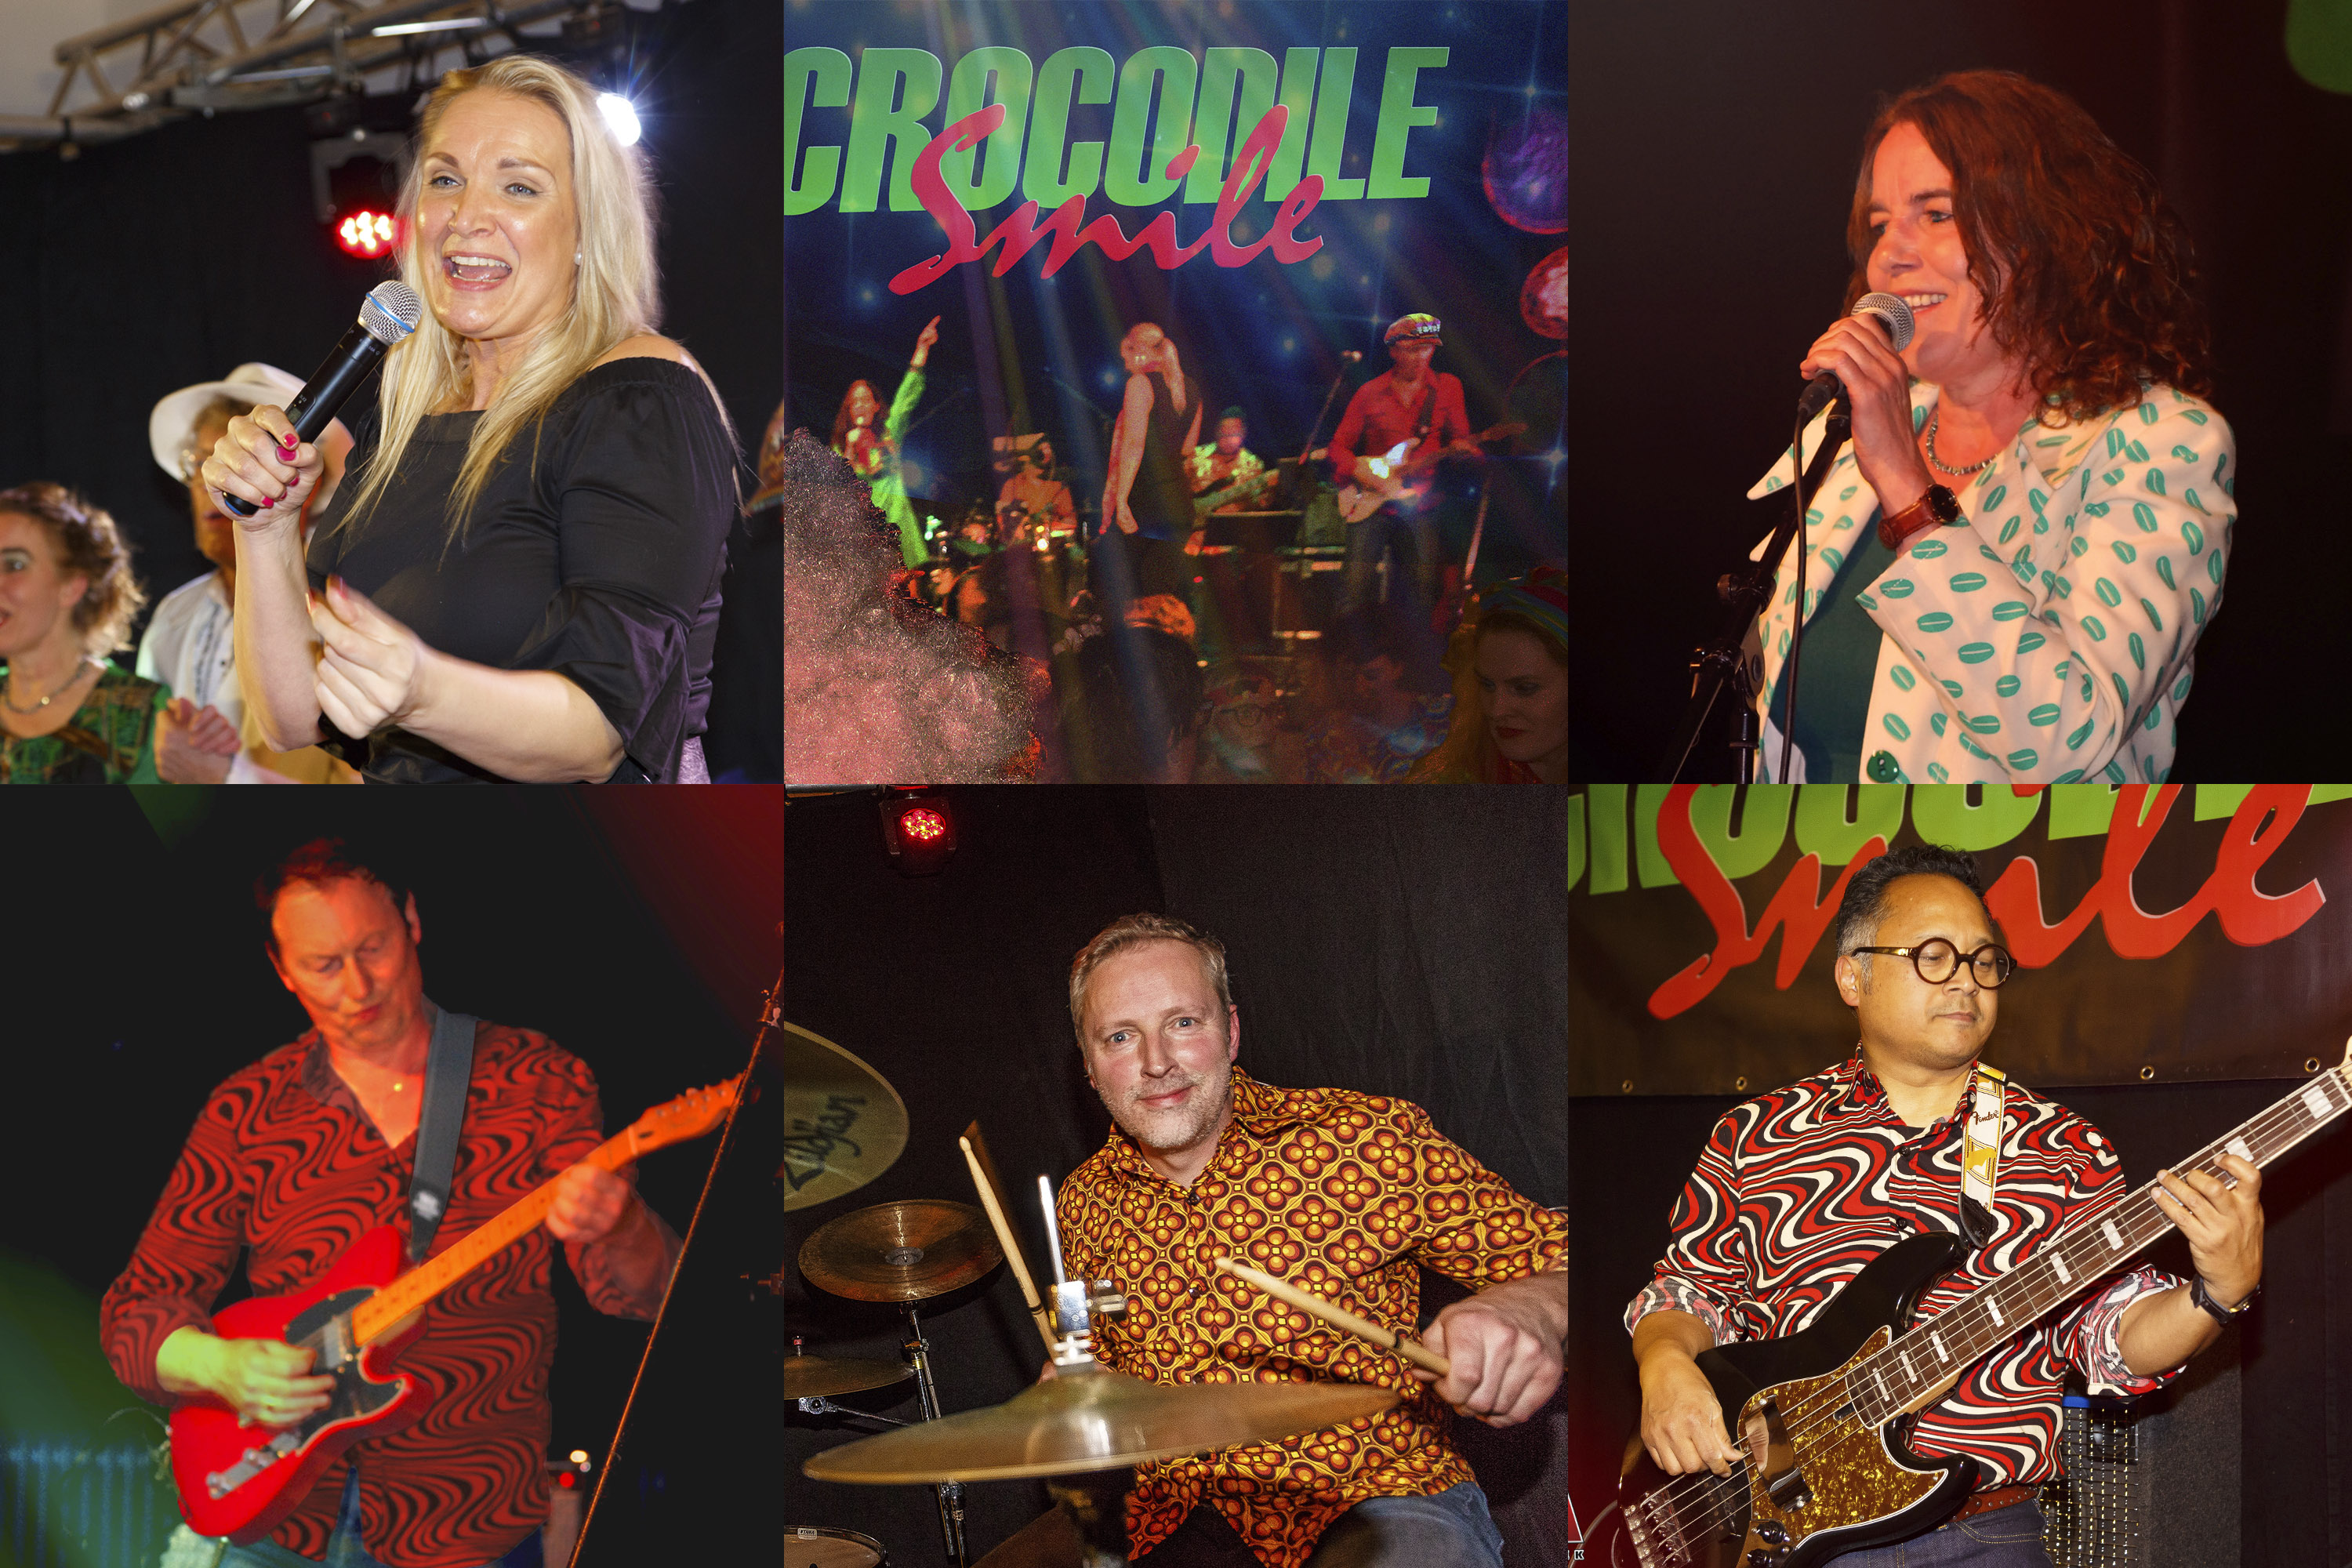 Crocodile Smile live band, collage.